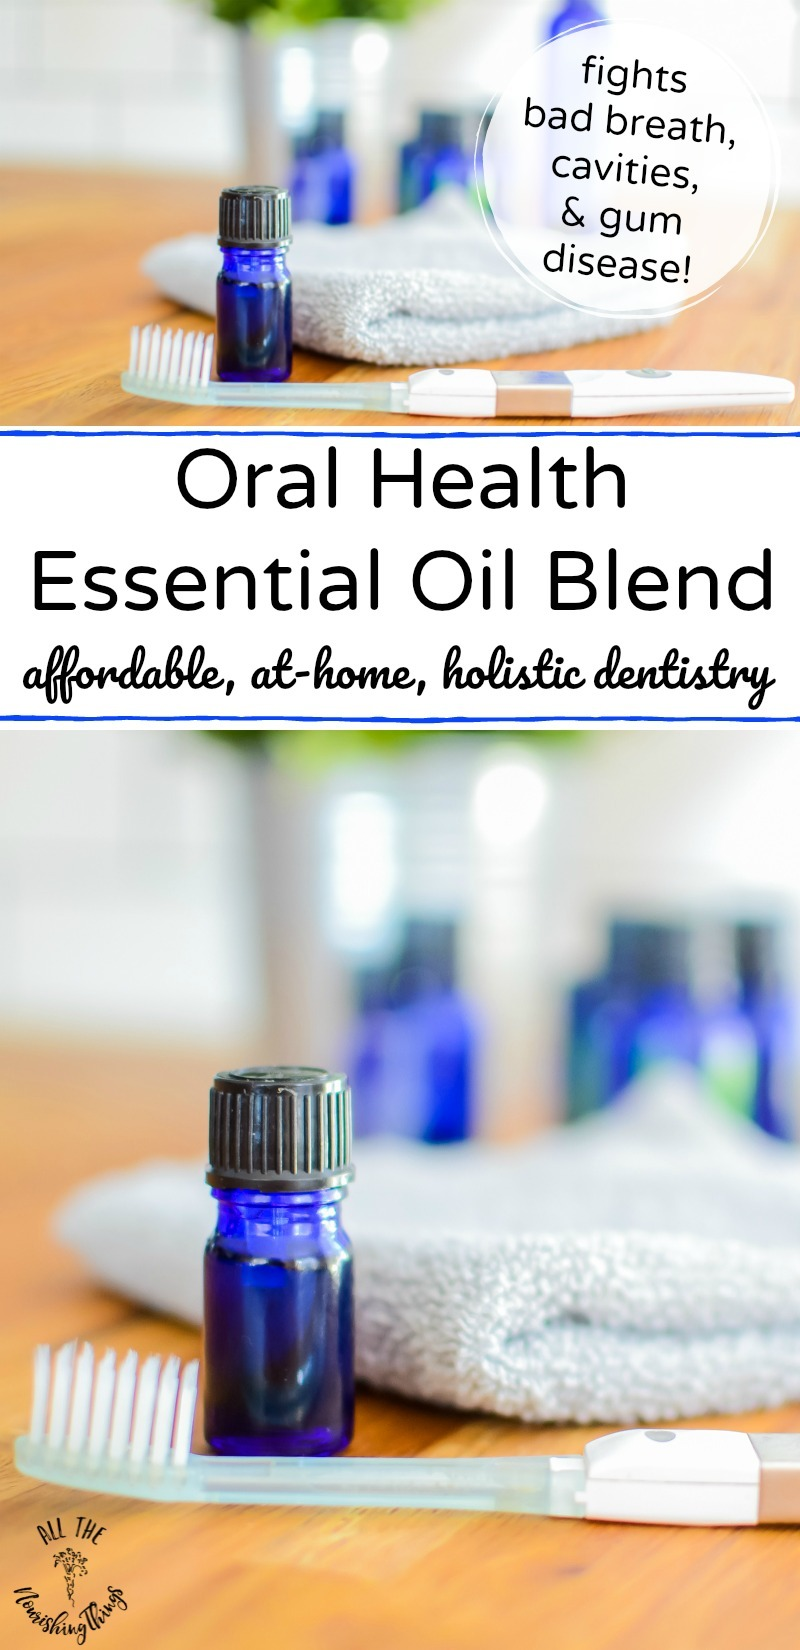 Oral Health Essential Oil Blend {fight bad breath, cavities, & gum